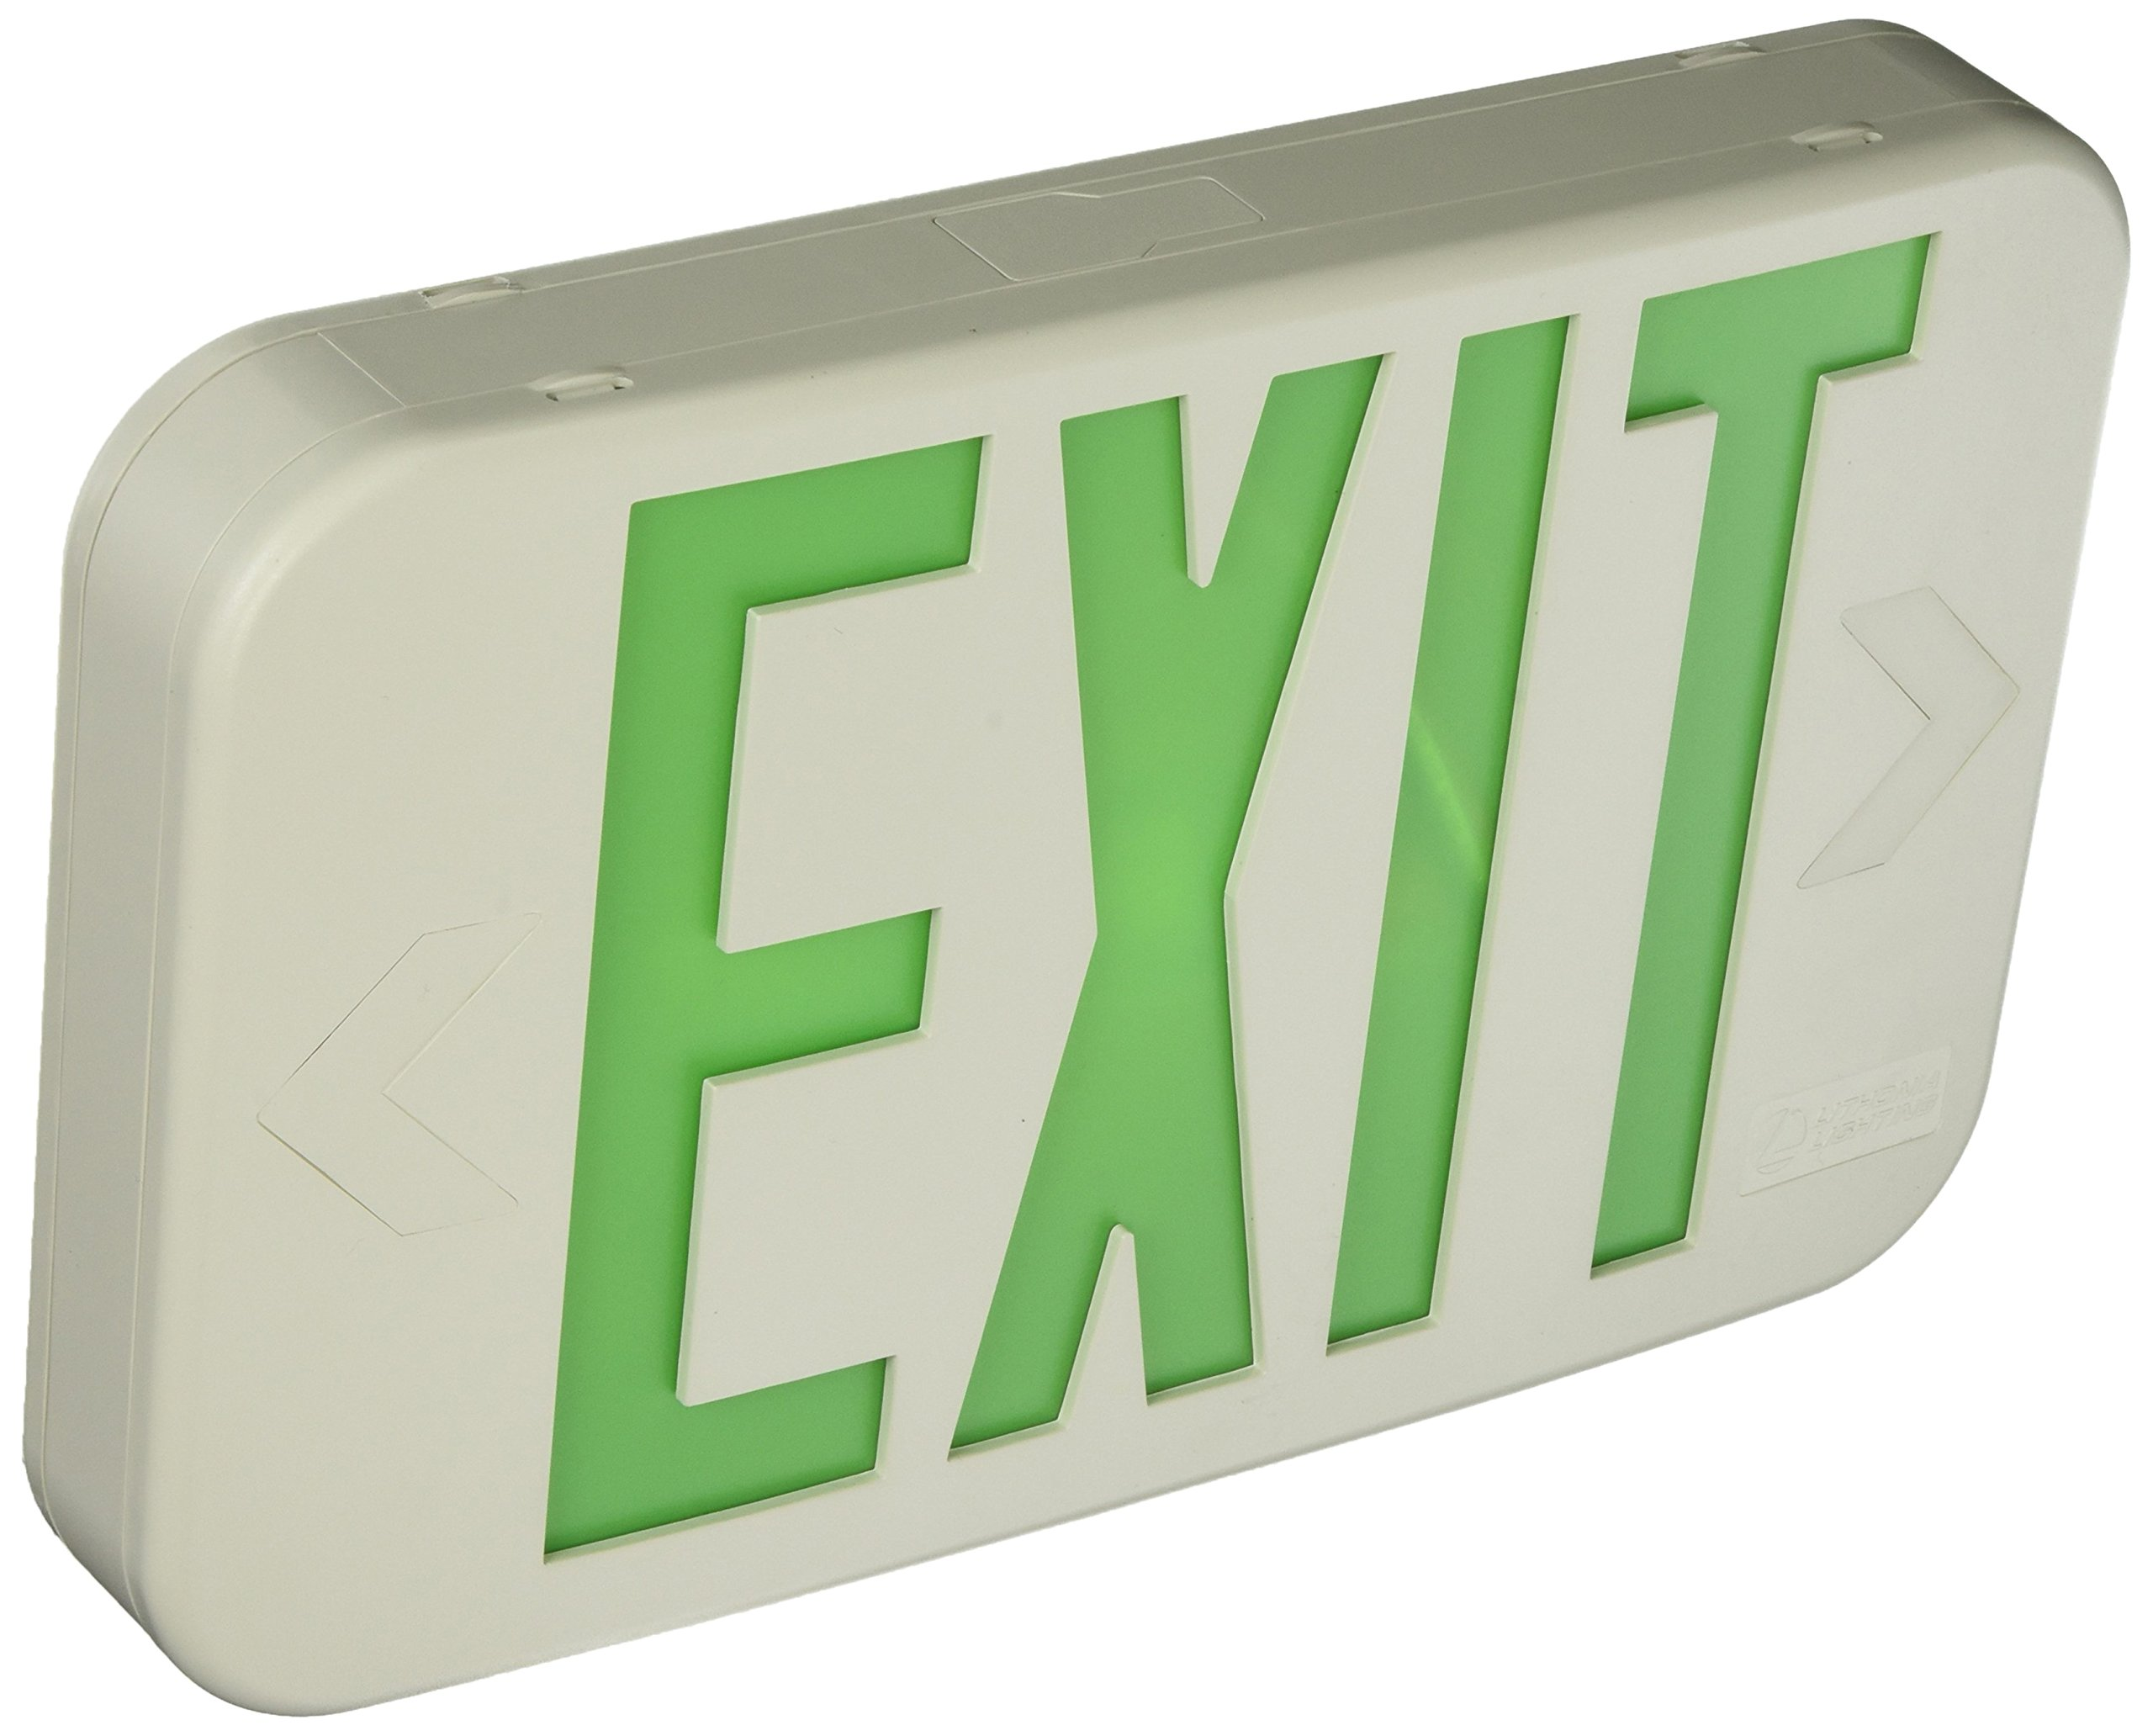 Lithonia Lighting EXG LED M6 Contractor Select Green Thermoplastic LED Exit Sign